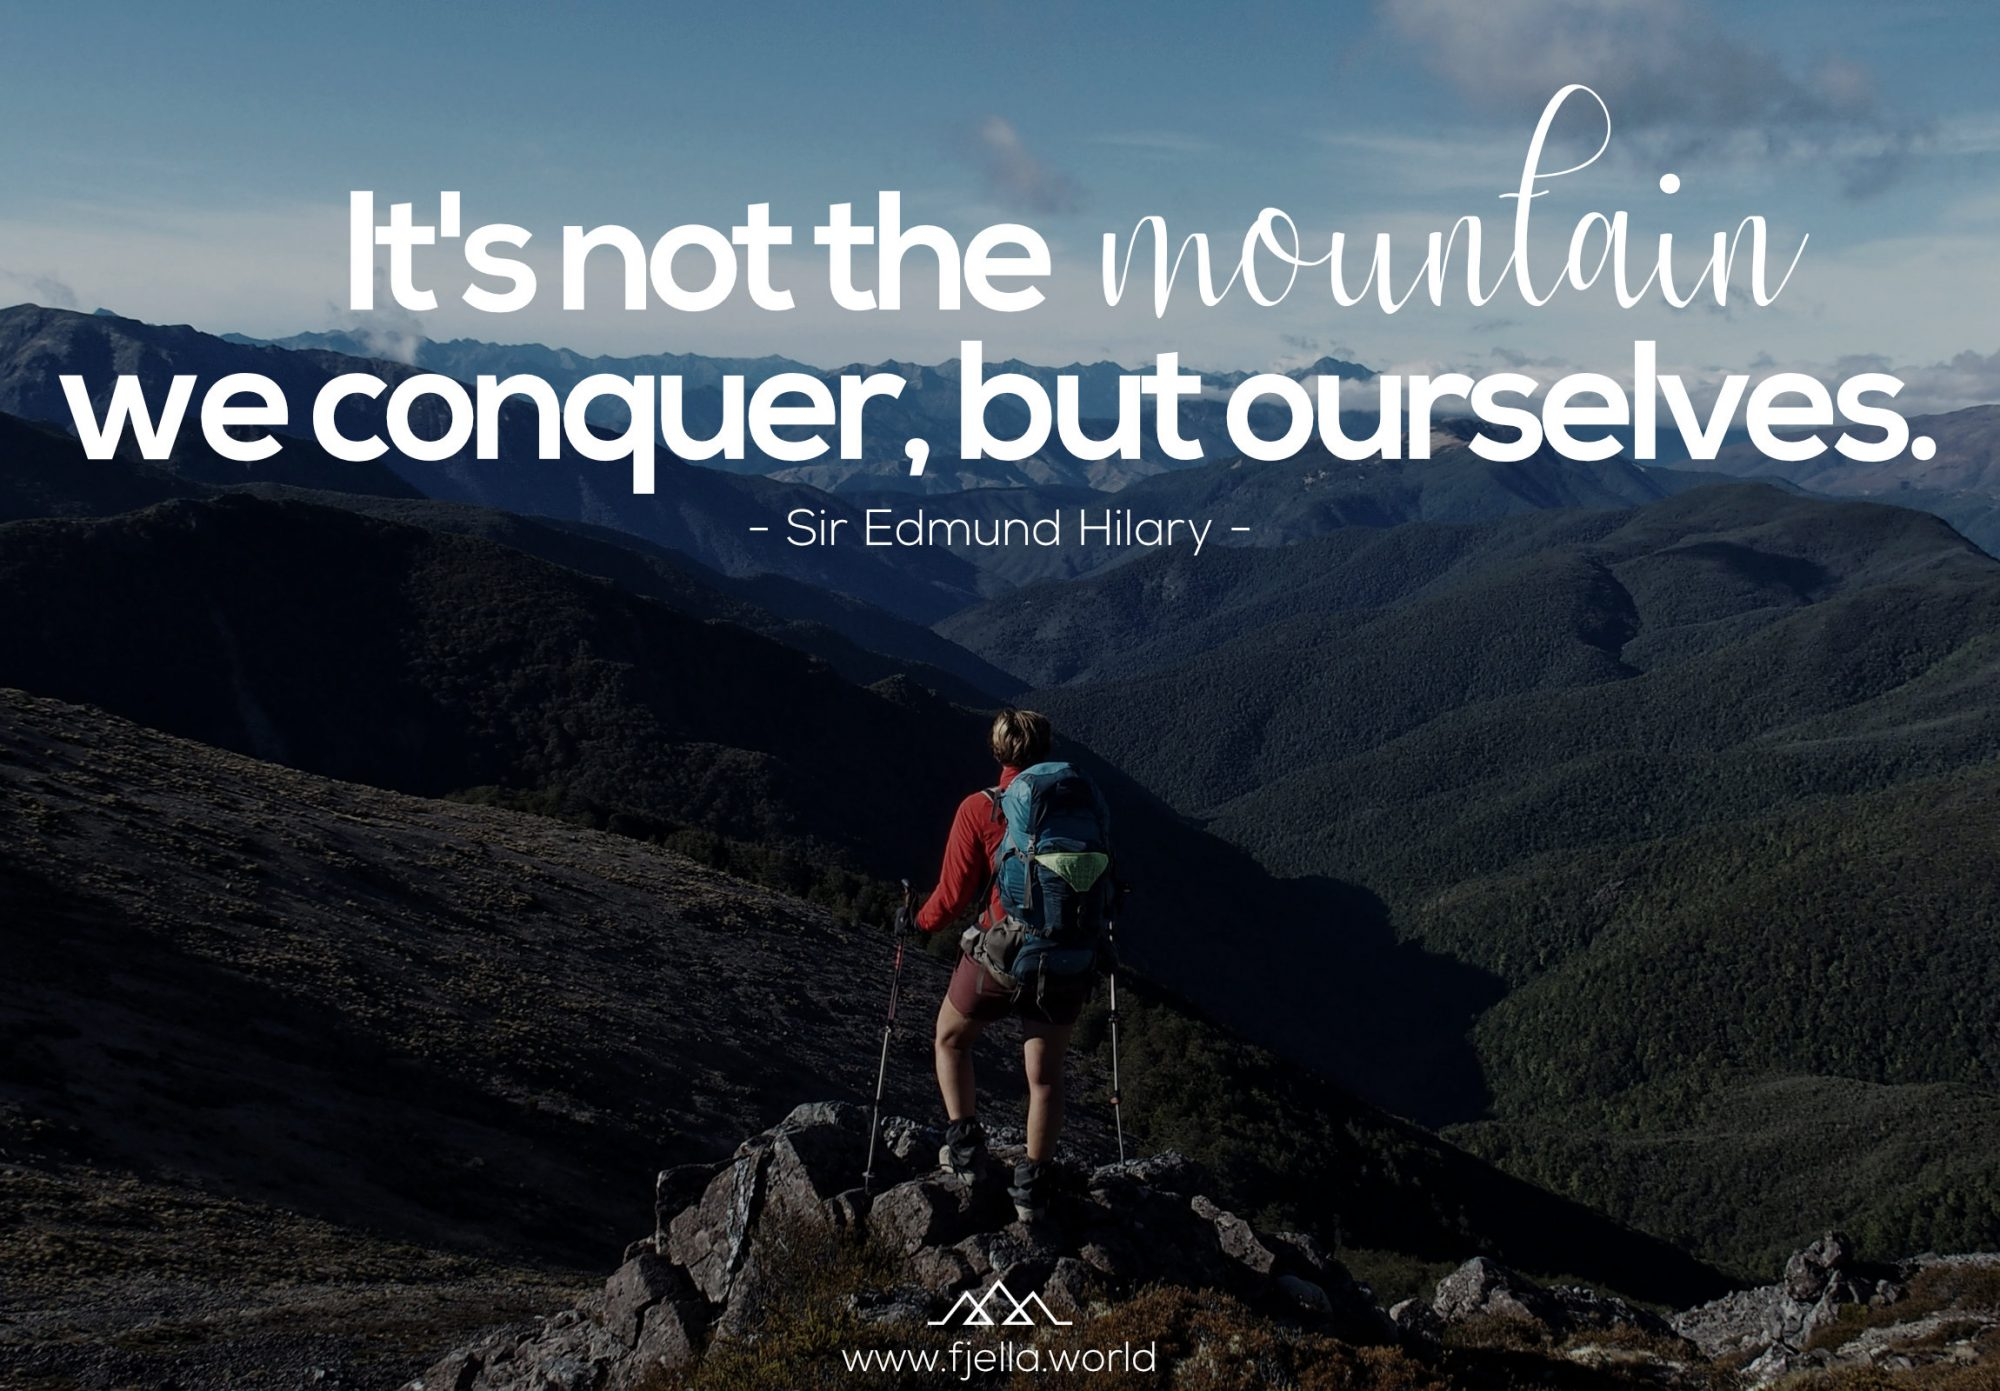 It's not the mountains we conquer but ourselves. Zugeschrieben Edmund Hilary, Bergspruch, Wanderzitat, Inspiration, Motivation, Zitat, Spruch, Reisezitate, Motivation